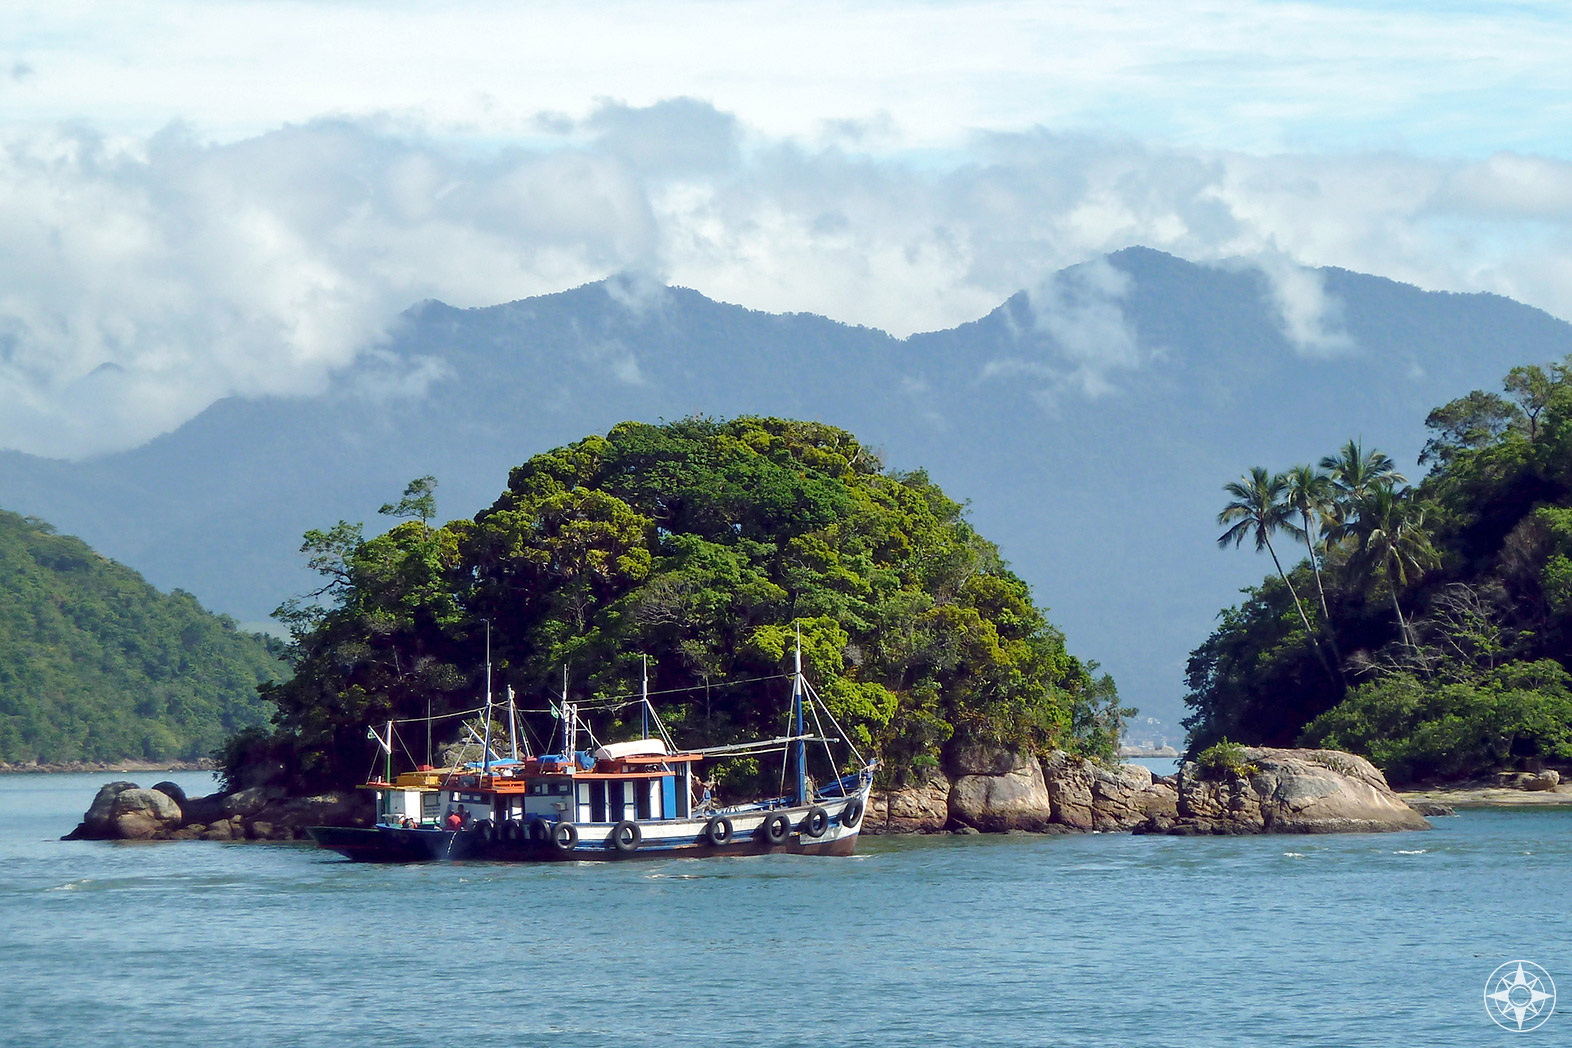 Fishing boats off Paradise island Ilha Grande in Brazil - Happier Place